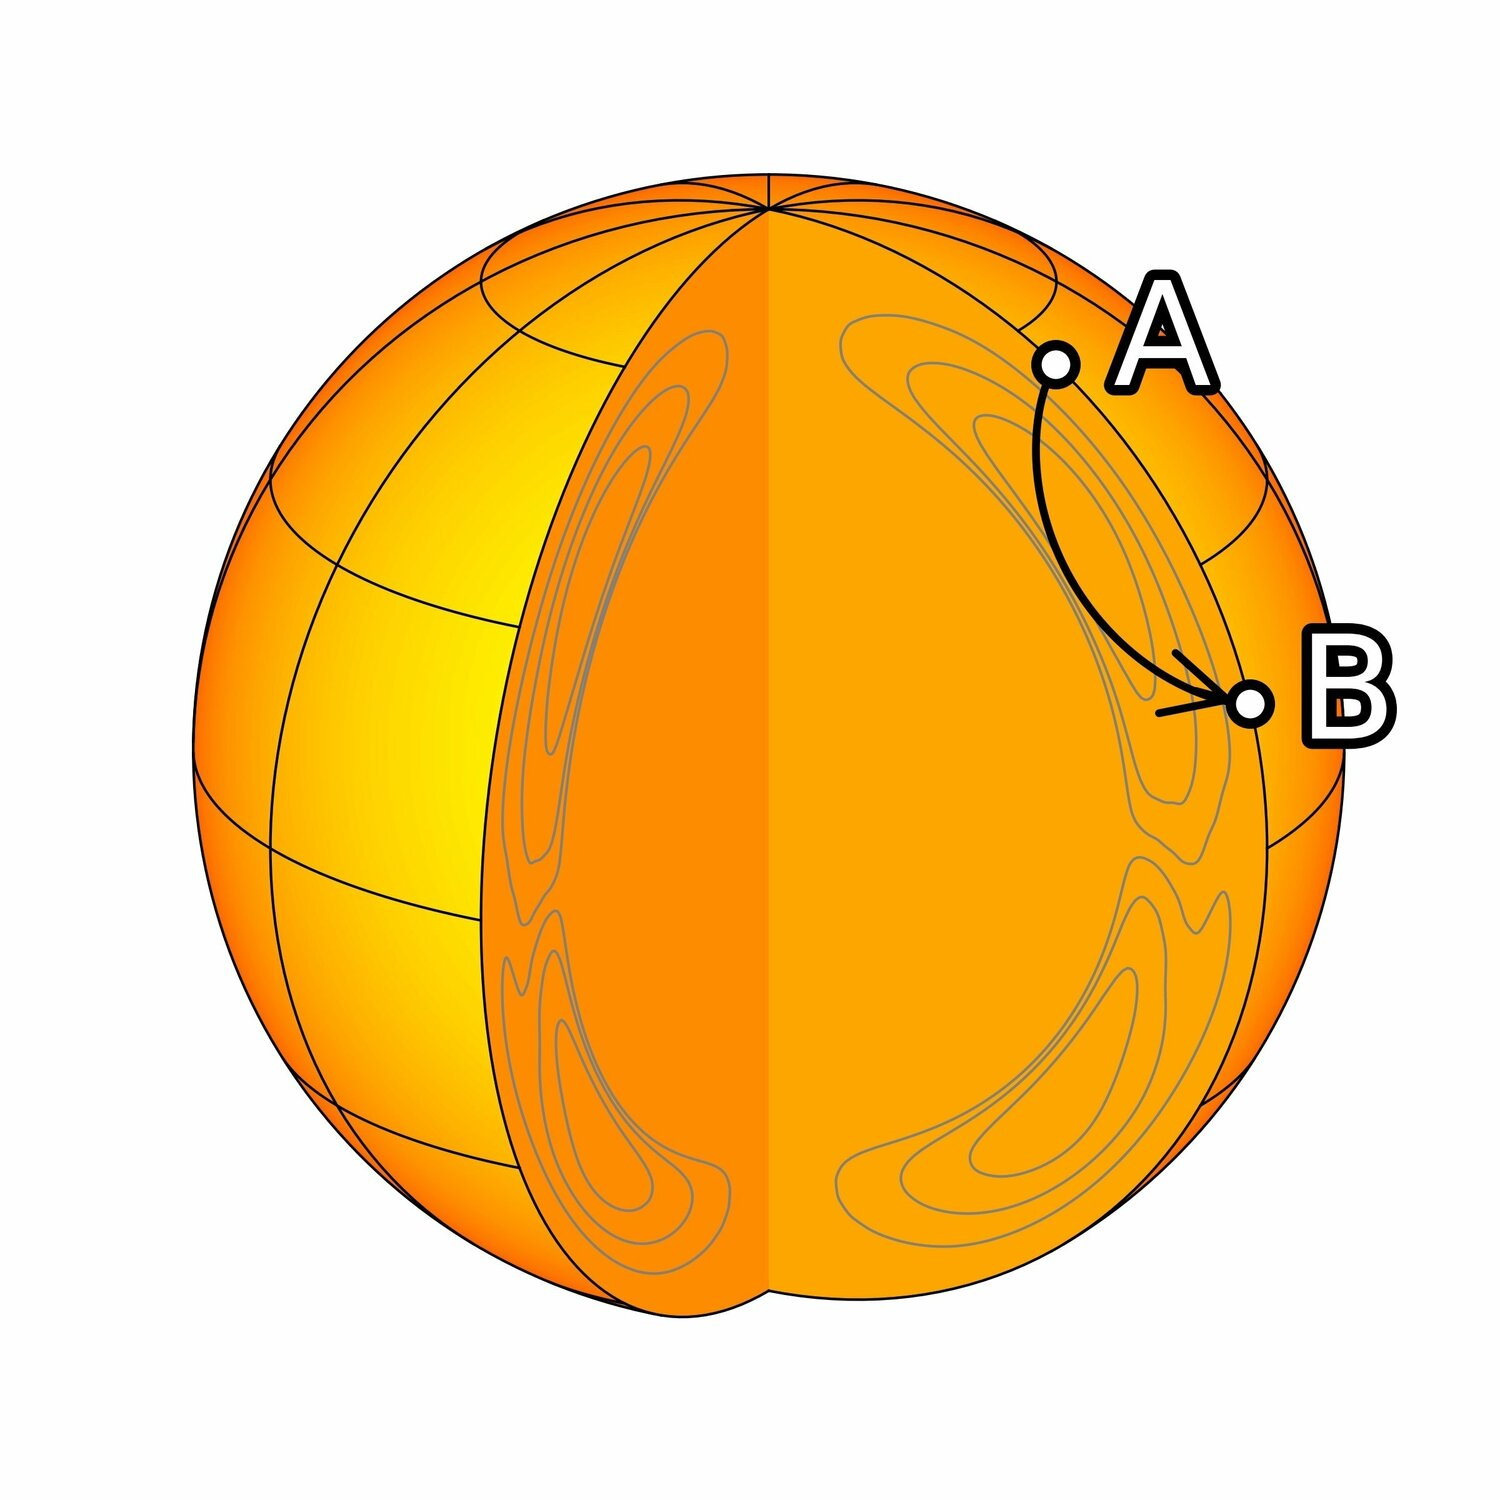 Sound waves propagate throughout the Sun and can be measured at the solar surface, for example at A and B. Just as seismology is used to see inside the earth, helioseismology is used to see inside the Sun (here near the wave path connecting A and B).